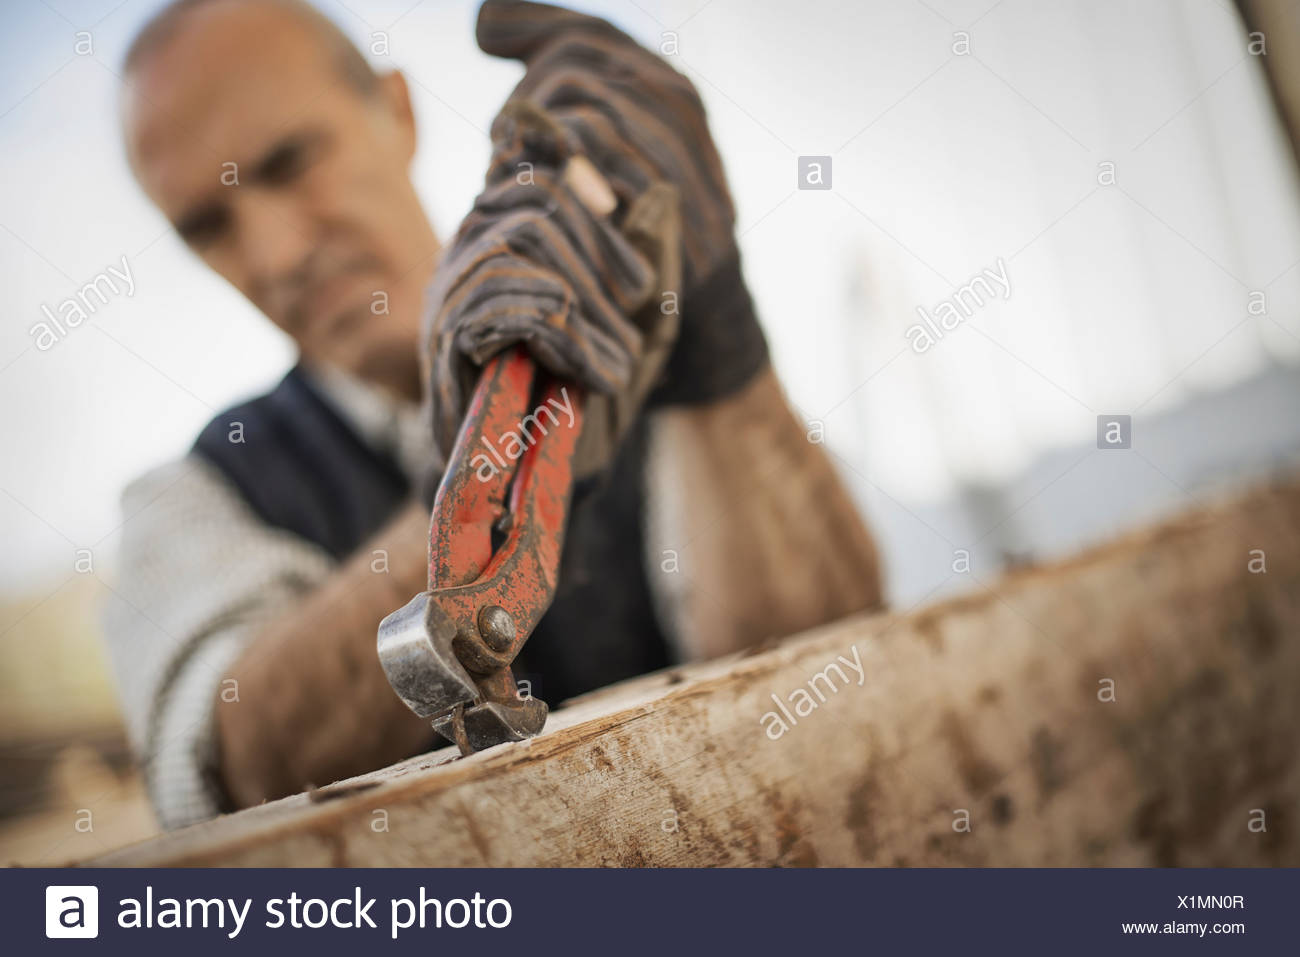 A man working in a reclaimed timber yard Using a tool to remove metals from a reclaimed piece of timber Stock Photo